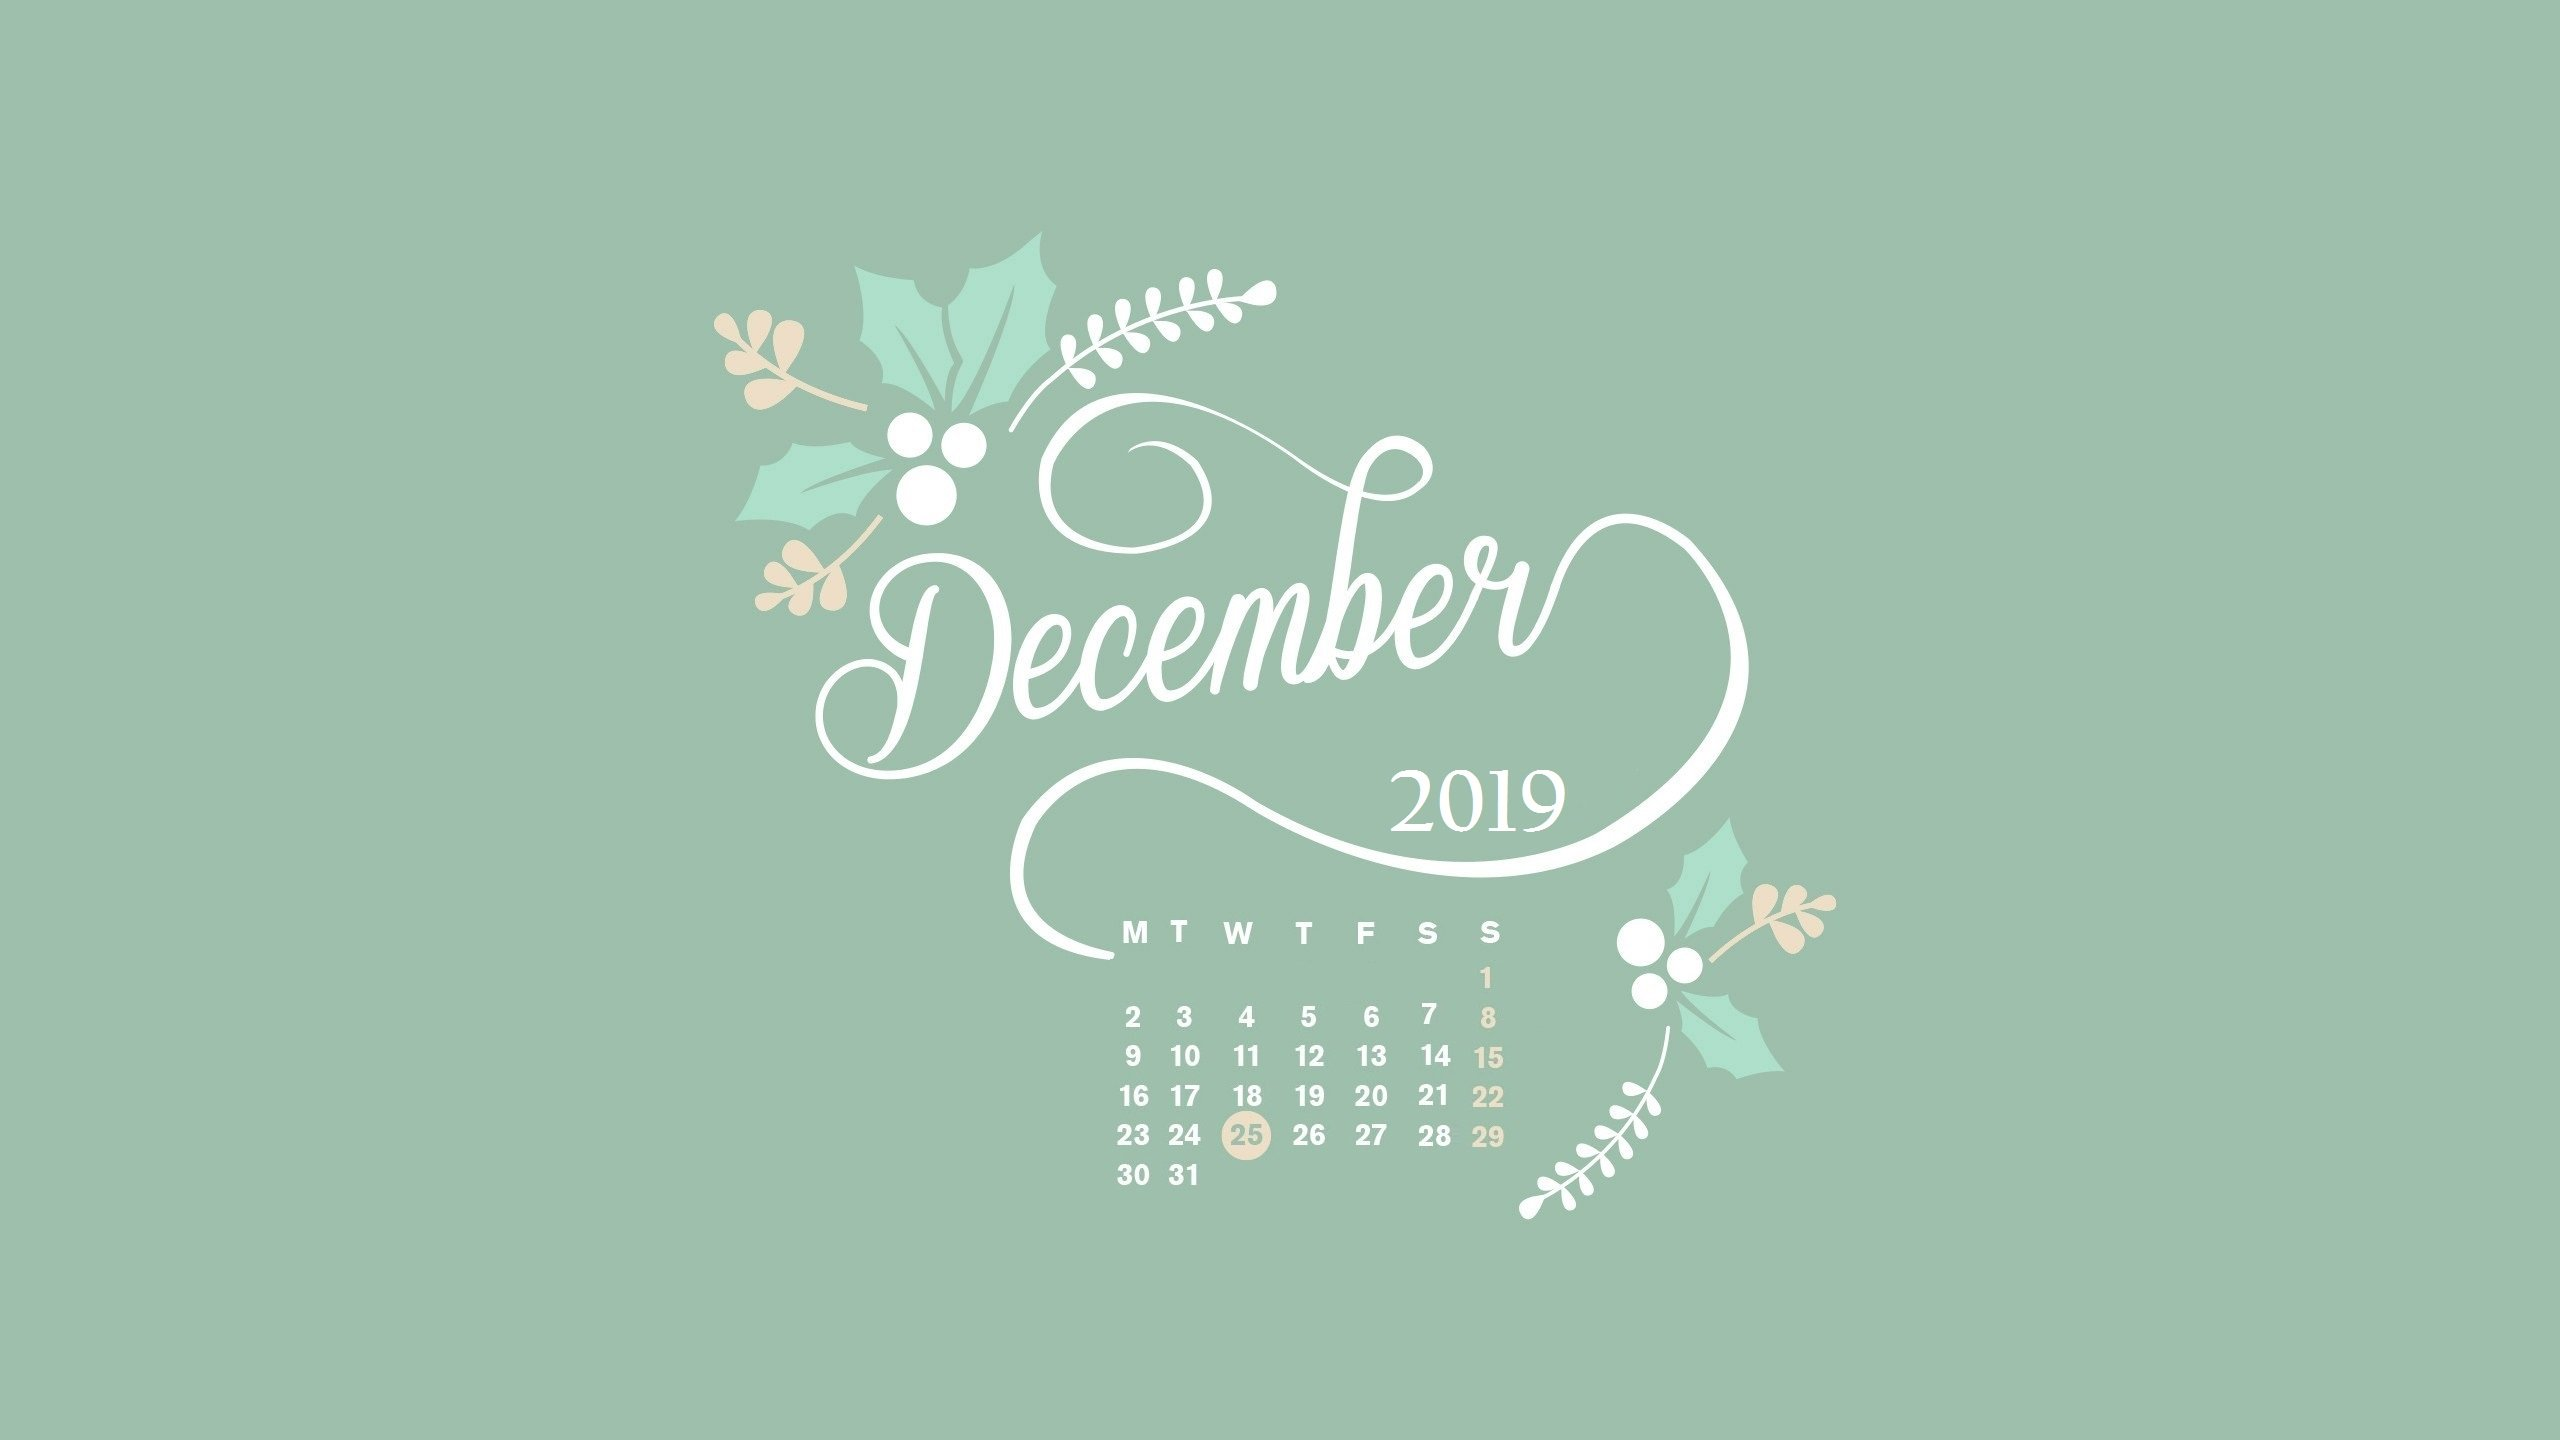 December 2019 Desktop Calendar HD Wallpaper 2560x1440